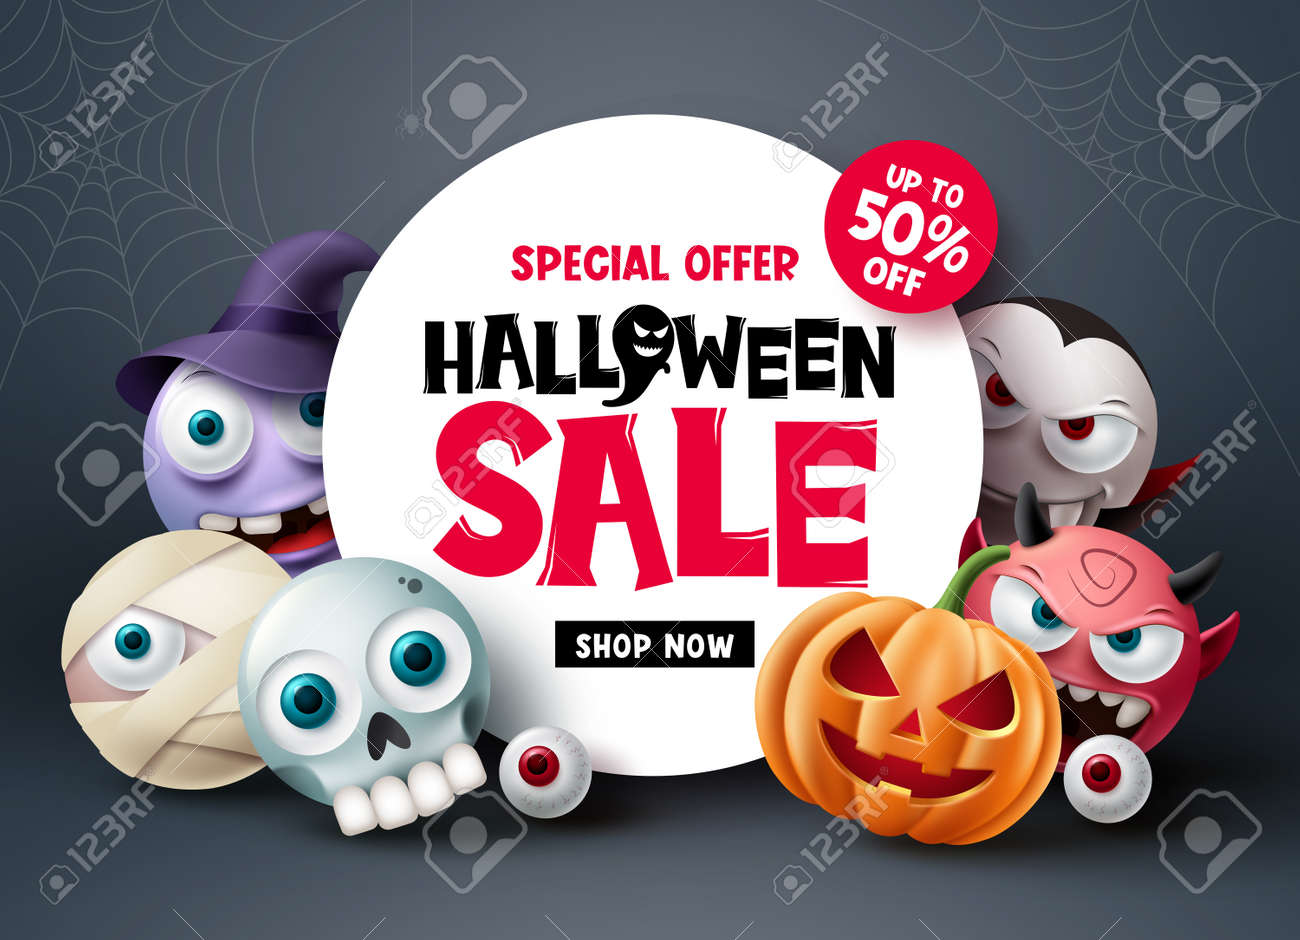 Halloween sale banner design. Halloween special offer discount text with scary and spooky cute character for holiday shopping advertisement background. Vector illustration - 173033609